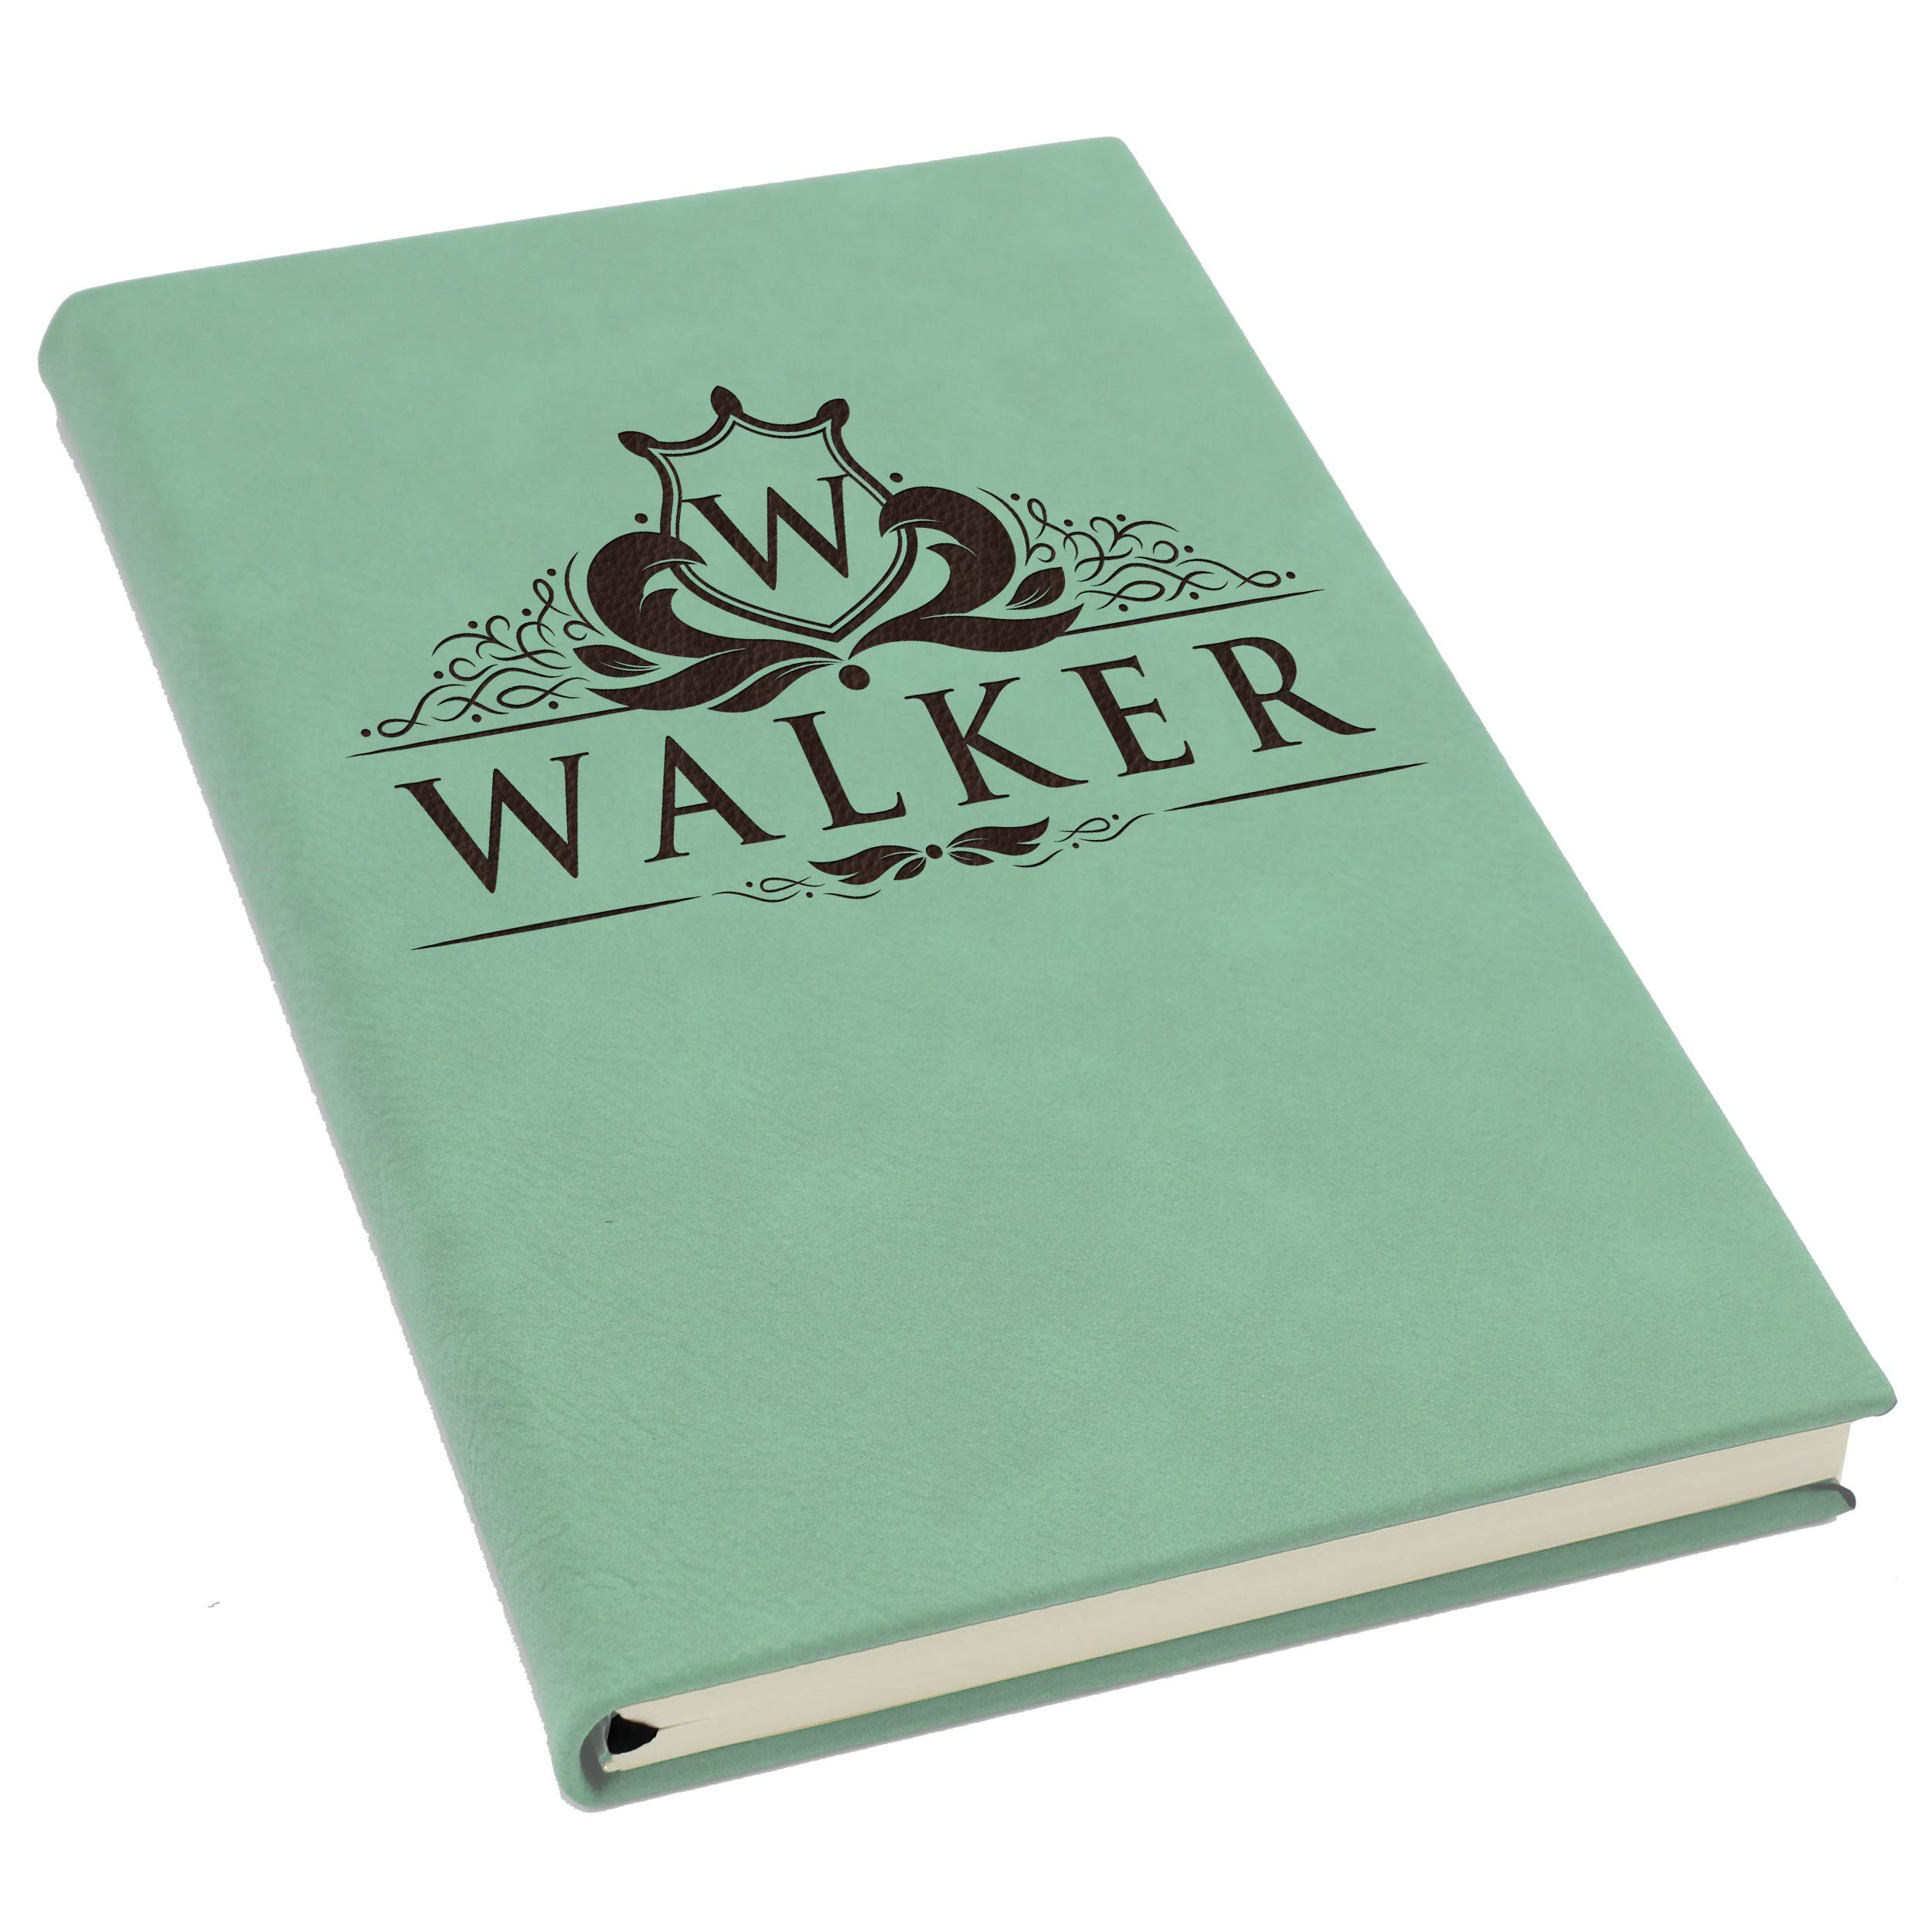 The Wedding Party Store Personalized Journal Notebook - Custom Engraved Travel Writers Gift for Women Men Kids Teachers Students (Teal)